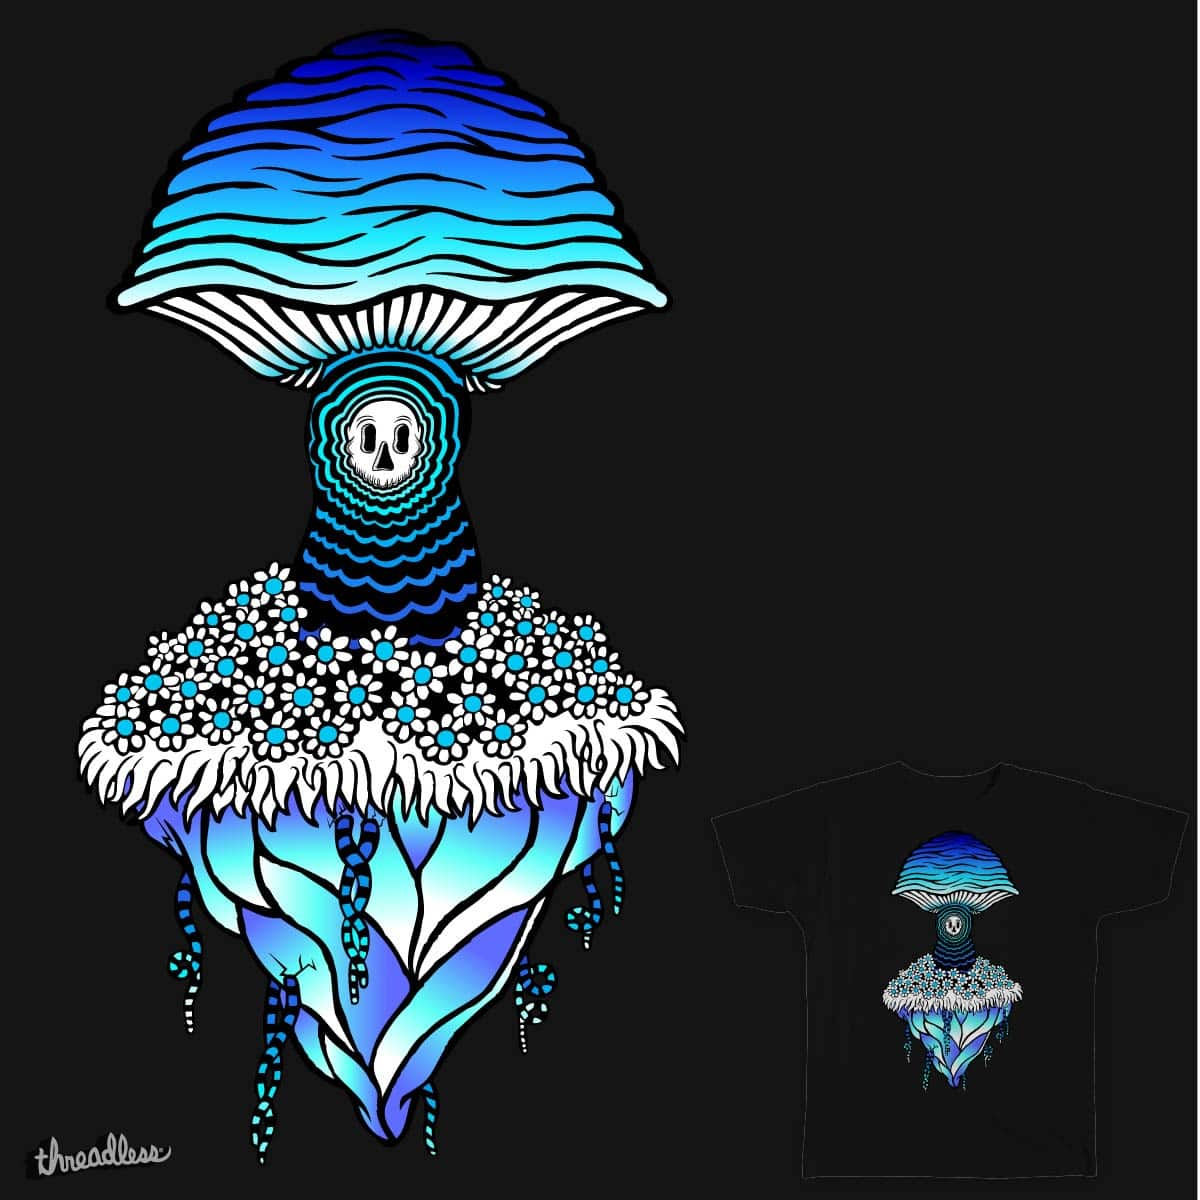 Shroom Island (Ice) by dark_planet on Threadless